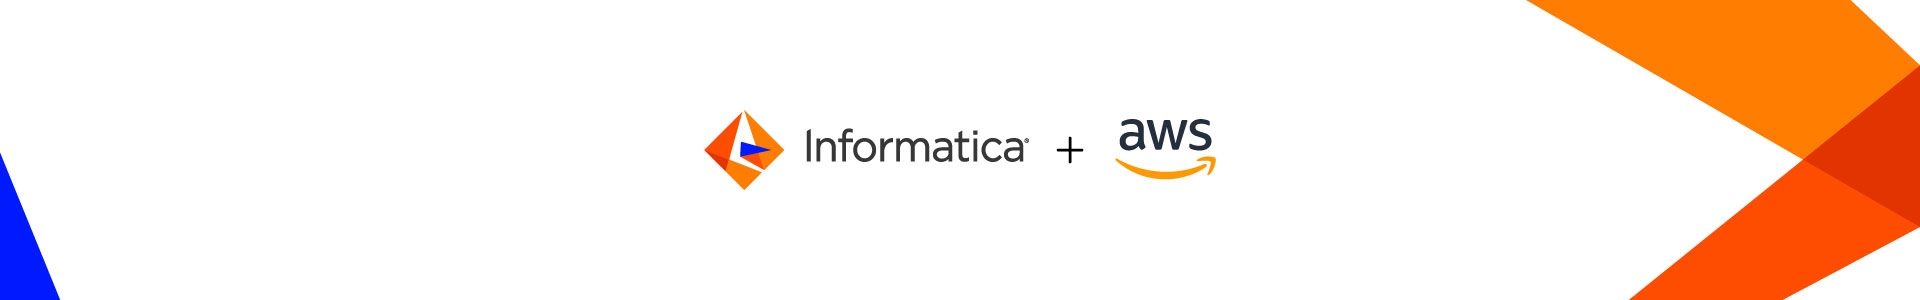 Informatica + AWS: Unleash the Power of your Data